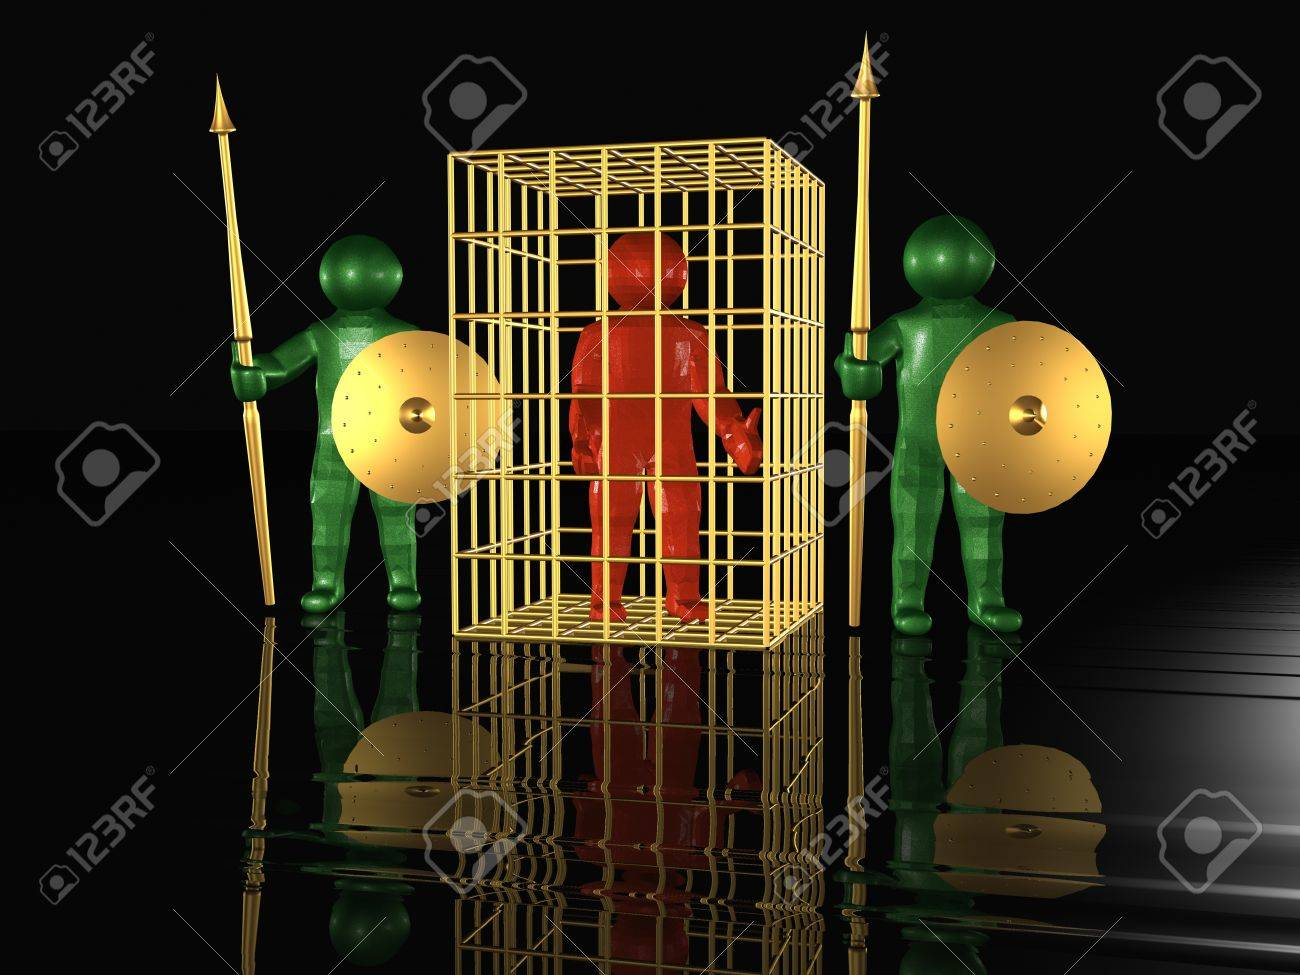 Imprisoned man and guardians, black background. Stock Photo - 9025838